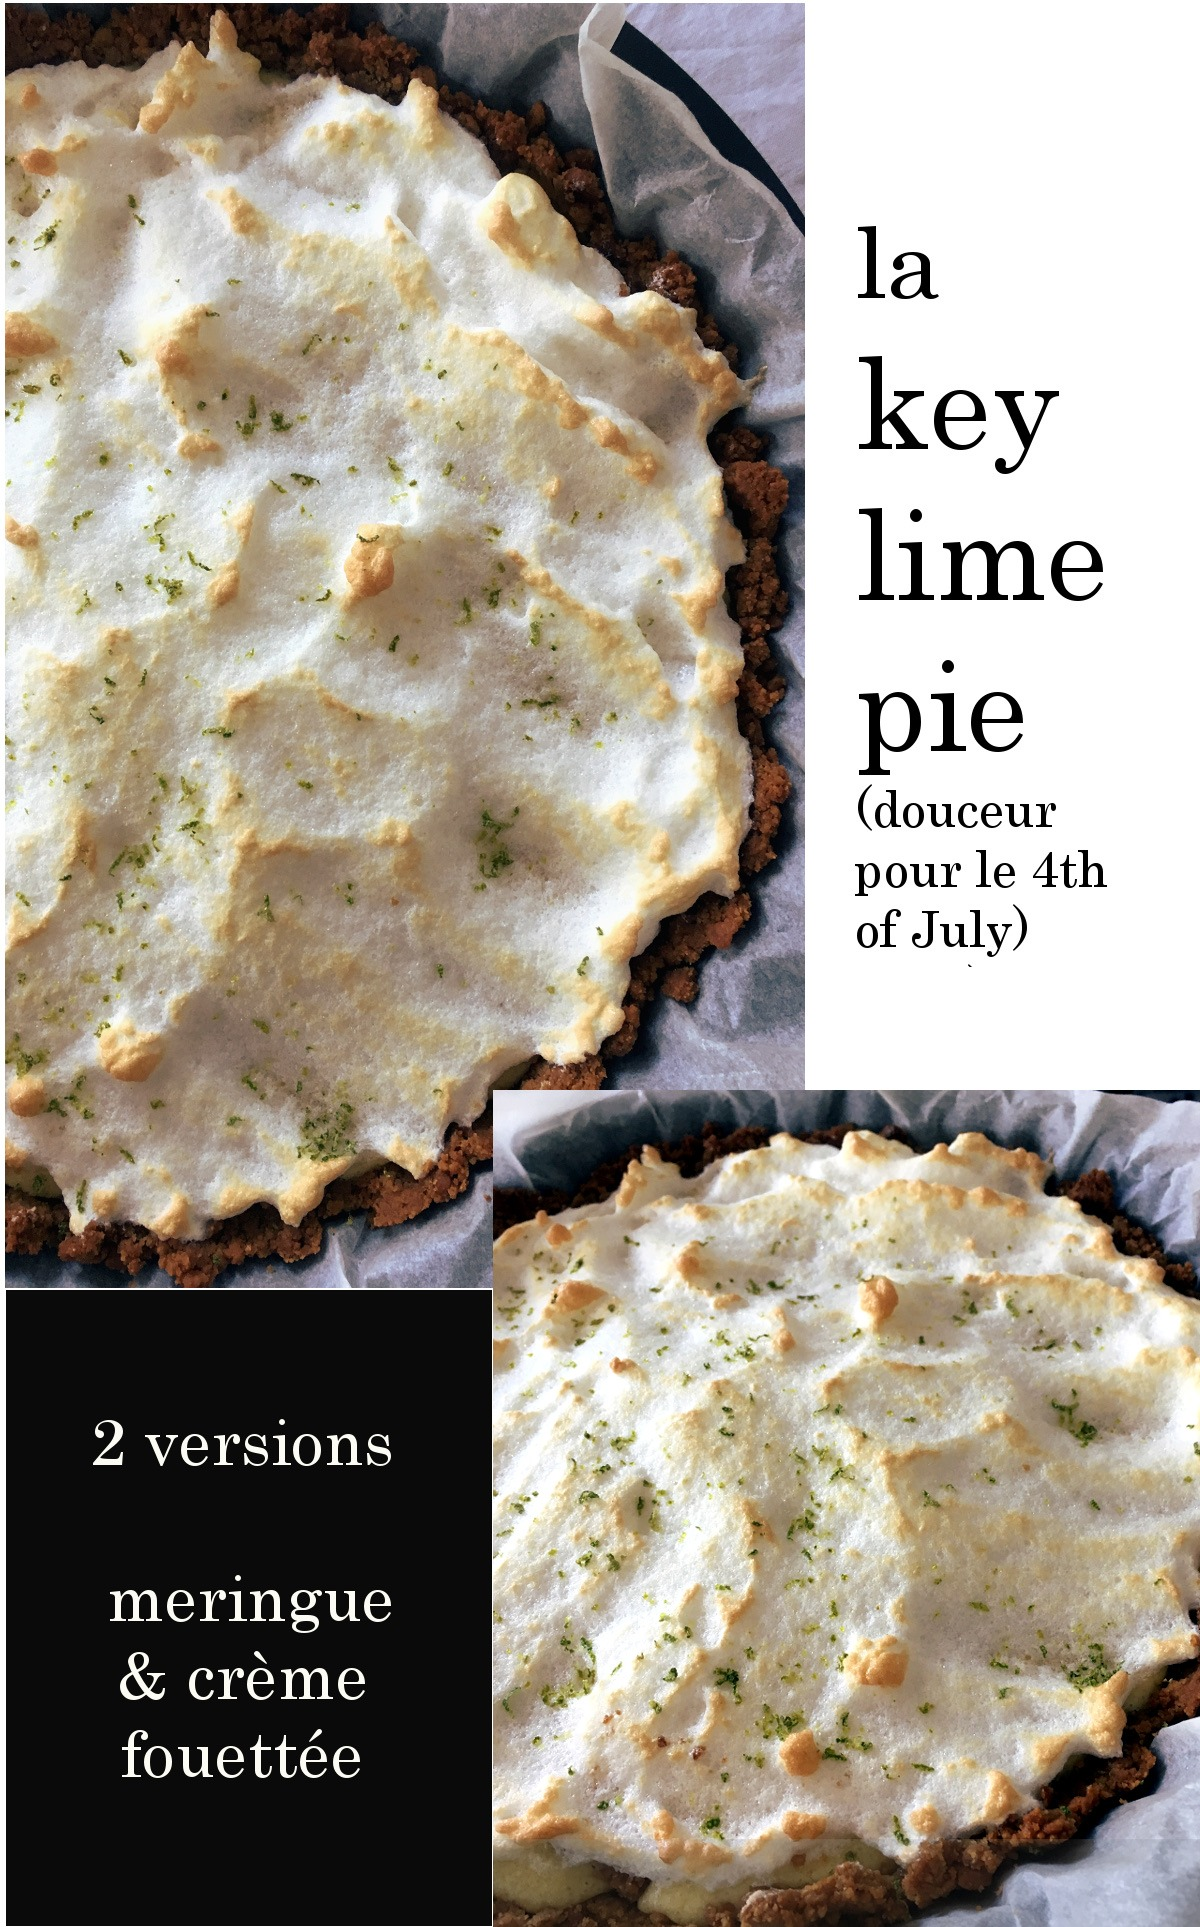 KEY LIME PIE FOR THE 4TH OF JULY